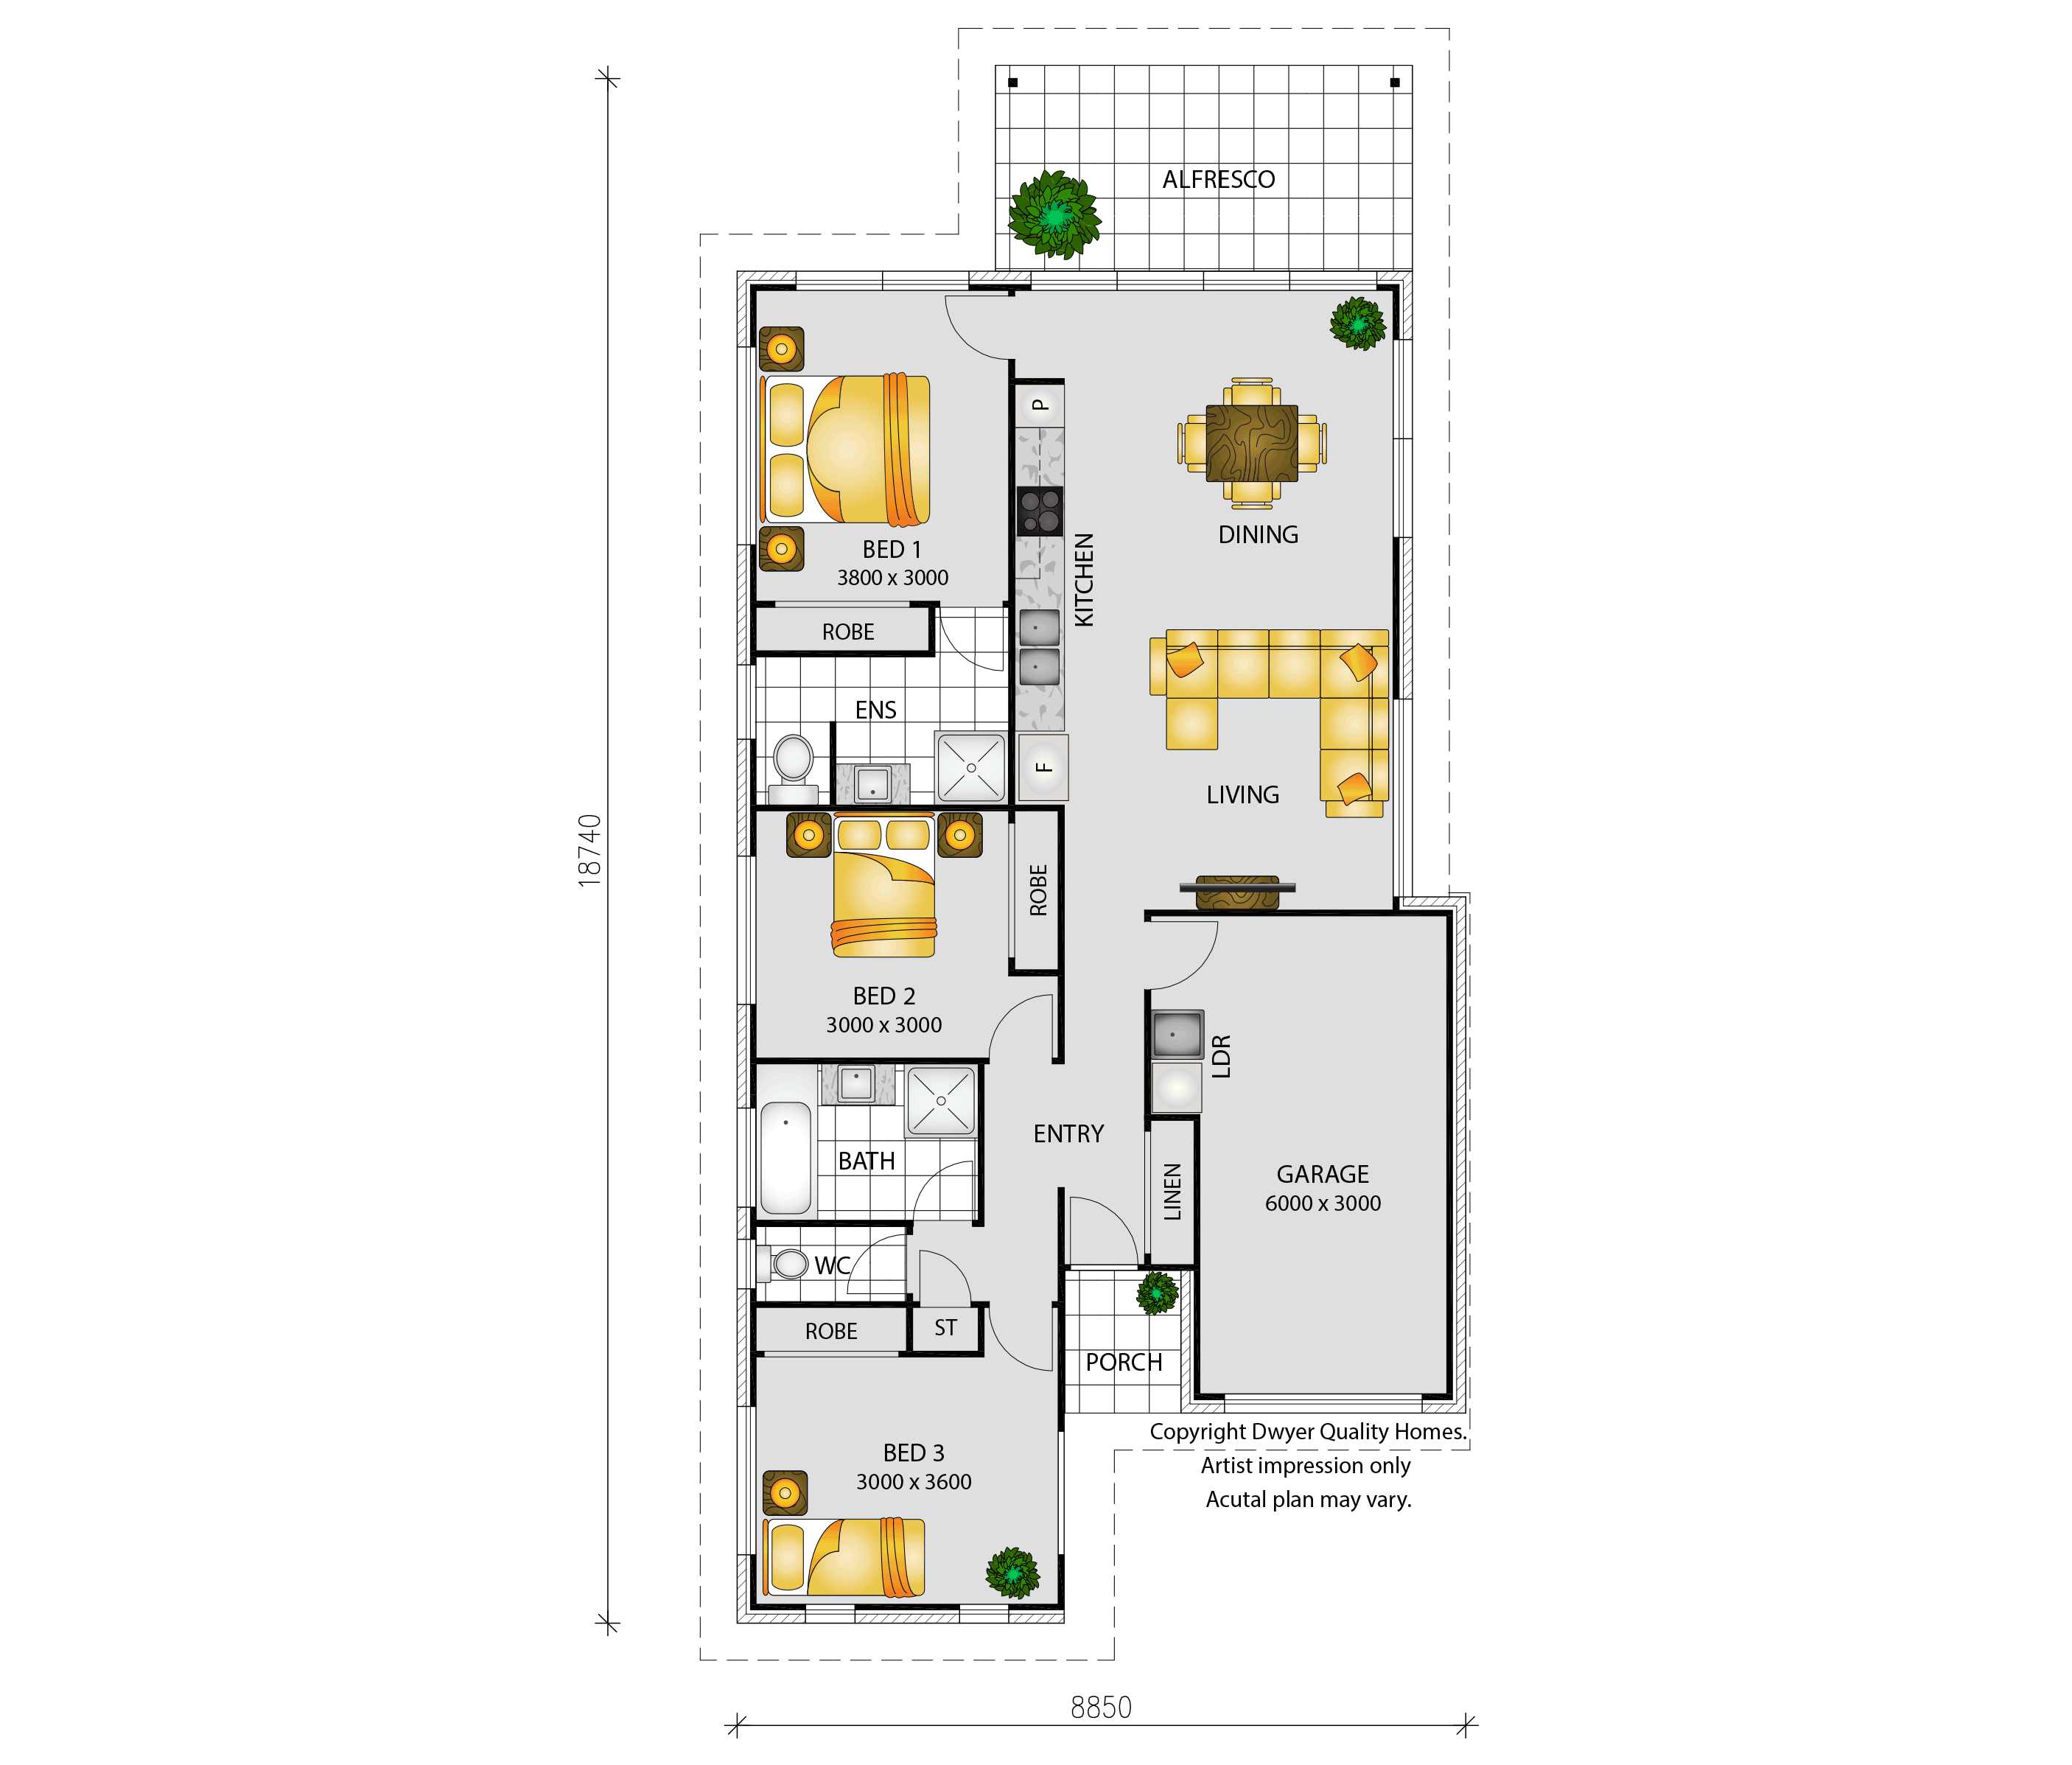 Antigua - Floorplans